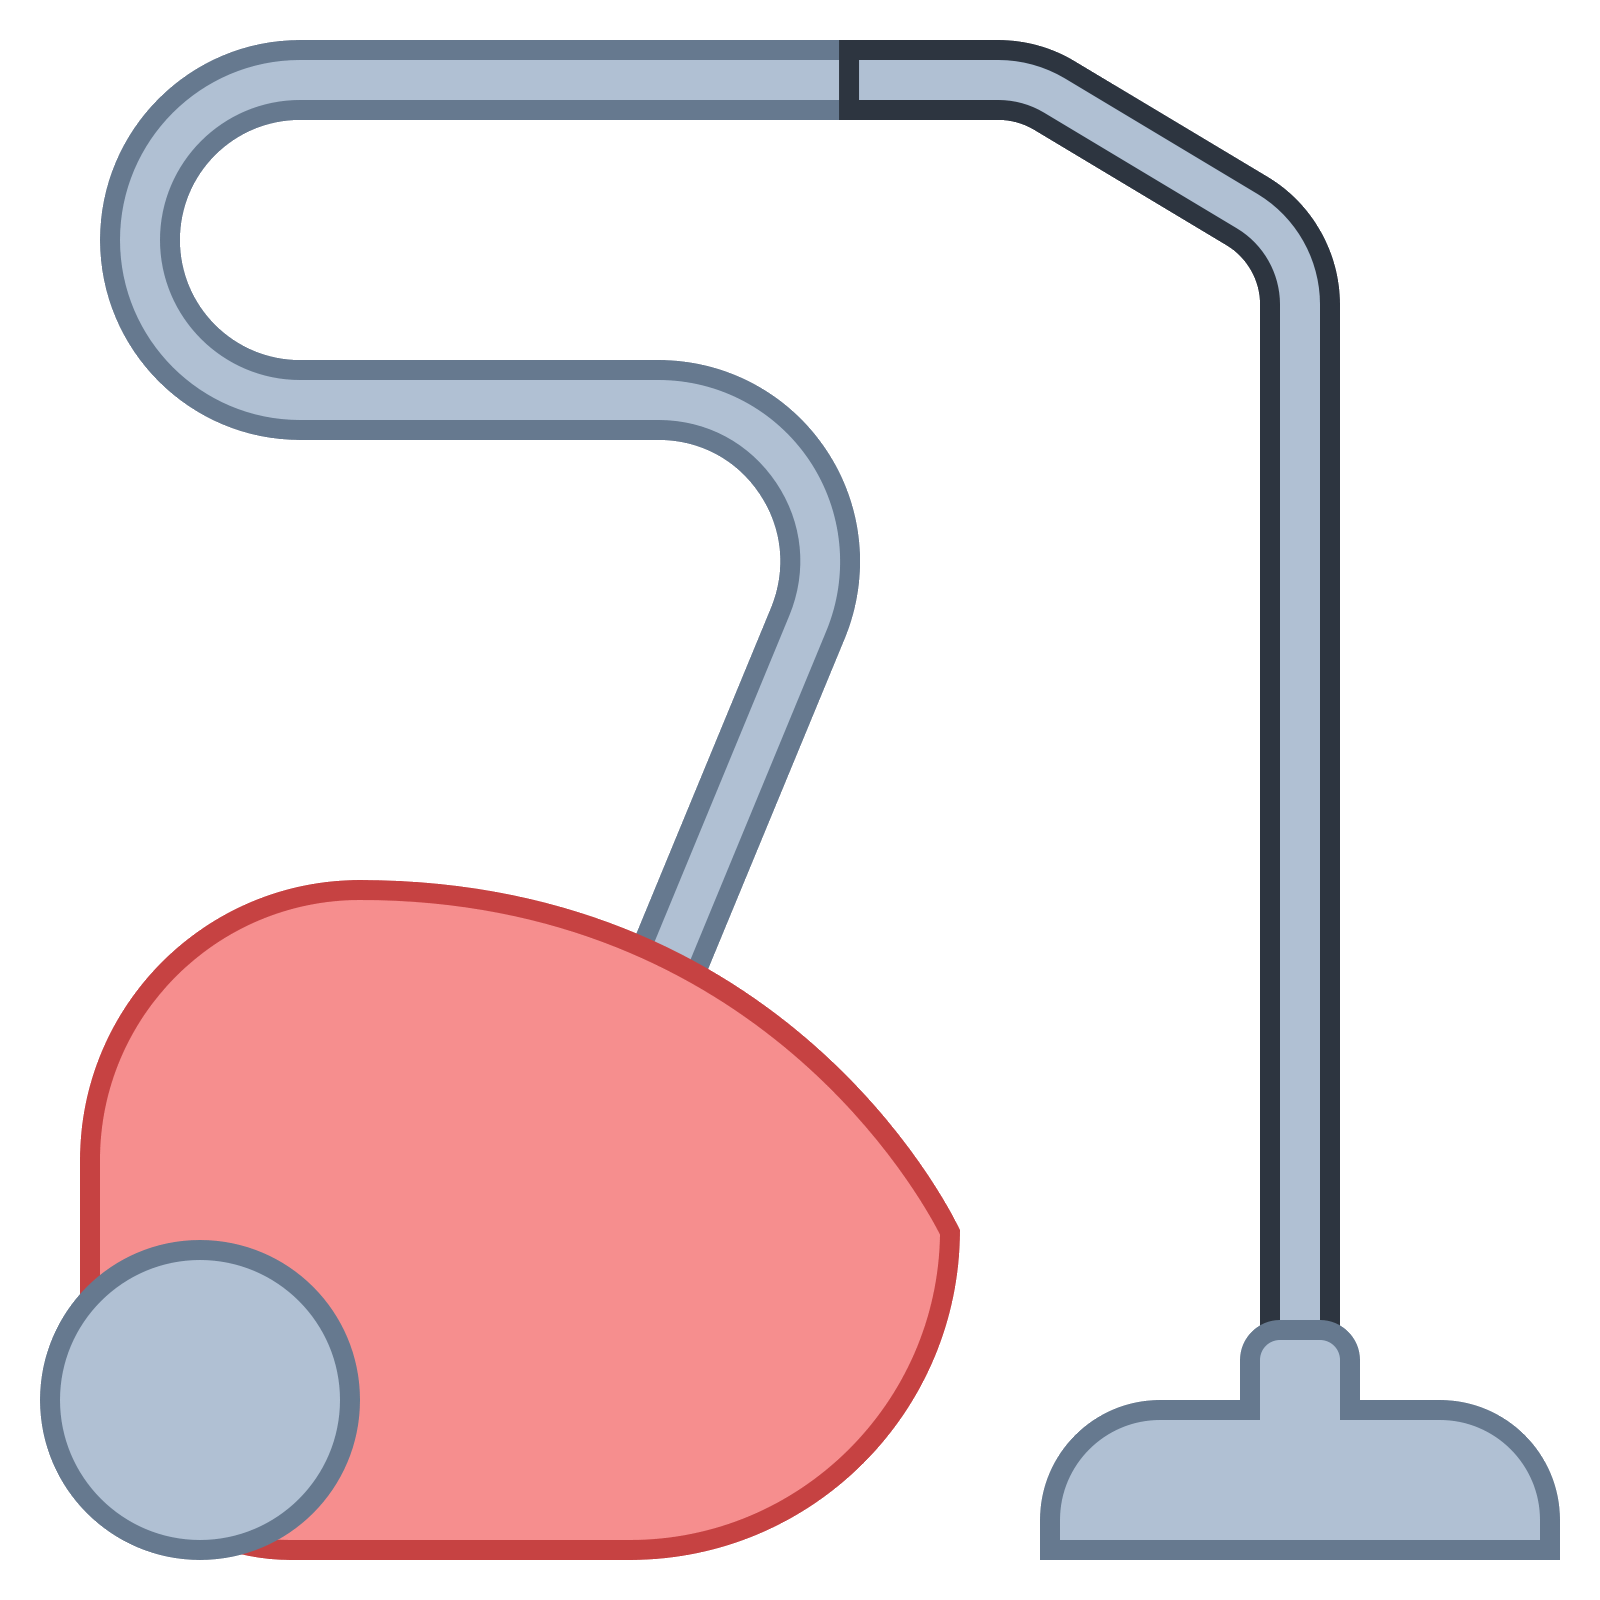 Vector vacuums hose. Odkurzacz icon free download